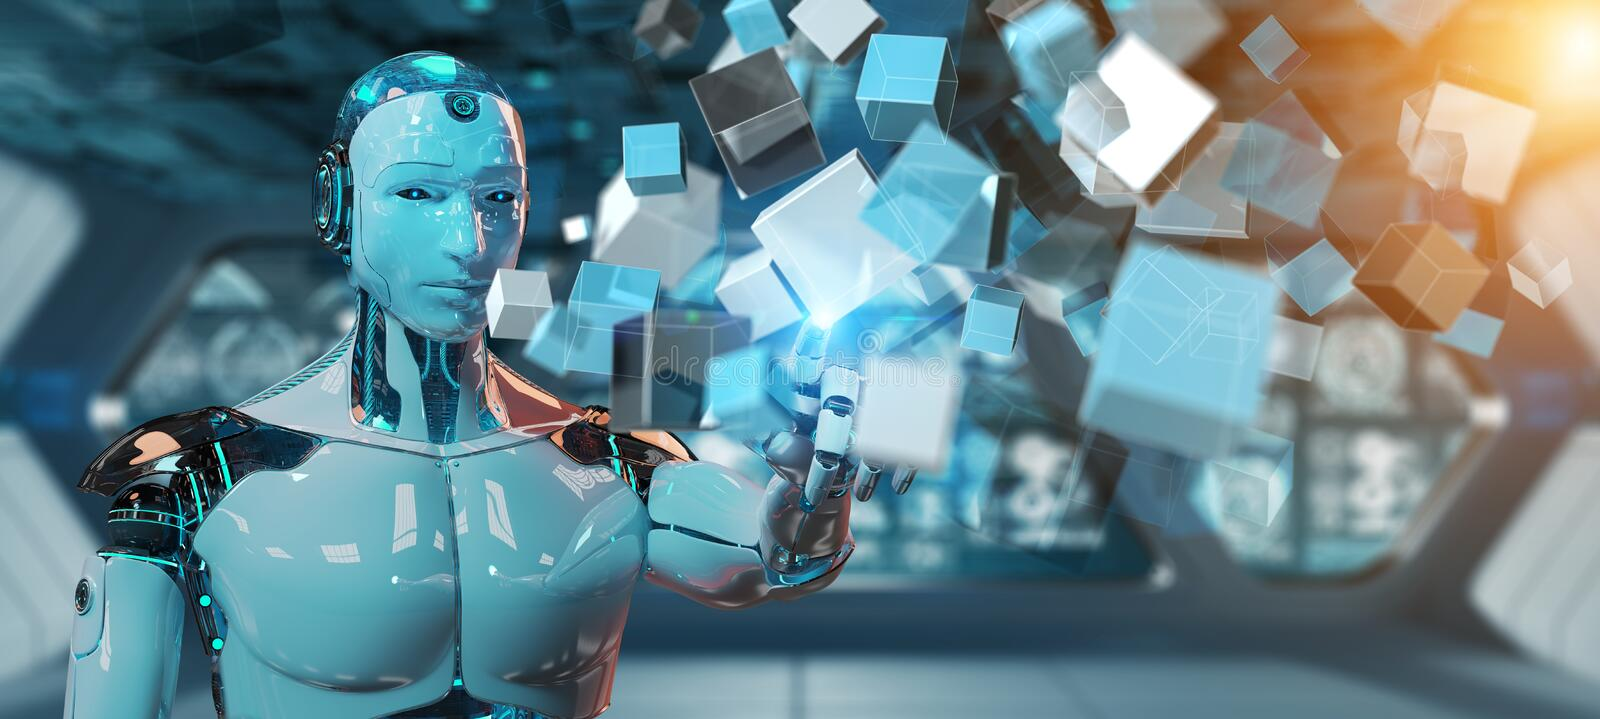 White cyborg using blue digital cube structure 3D rendering vector illustration